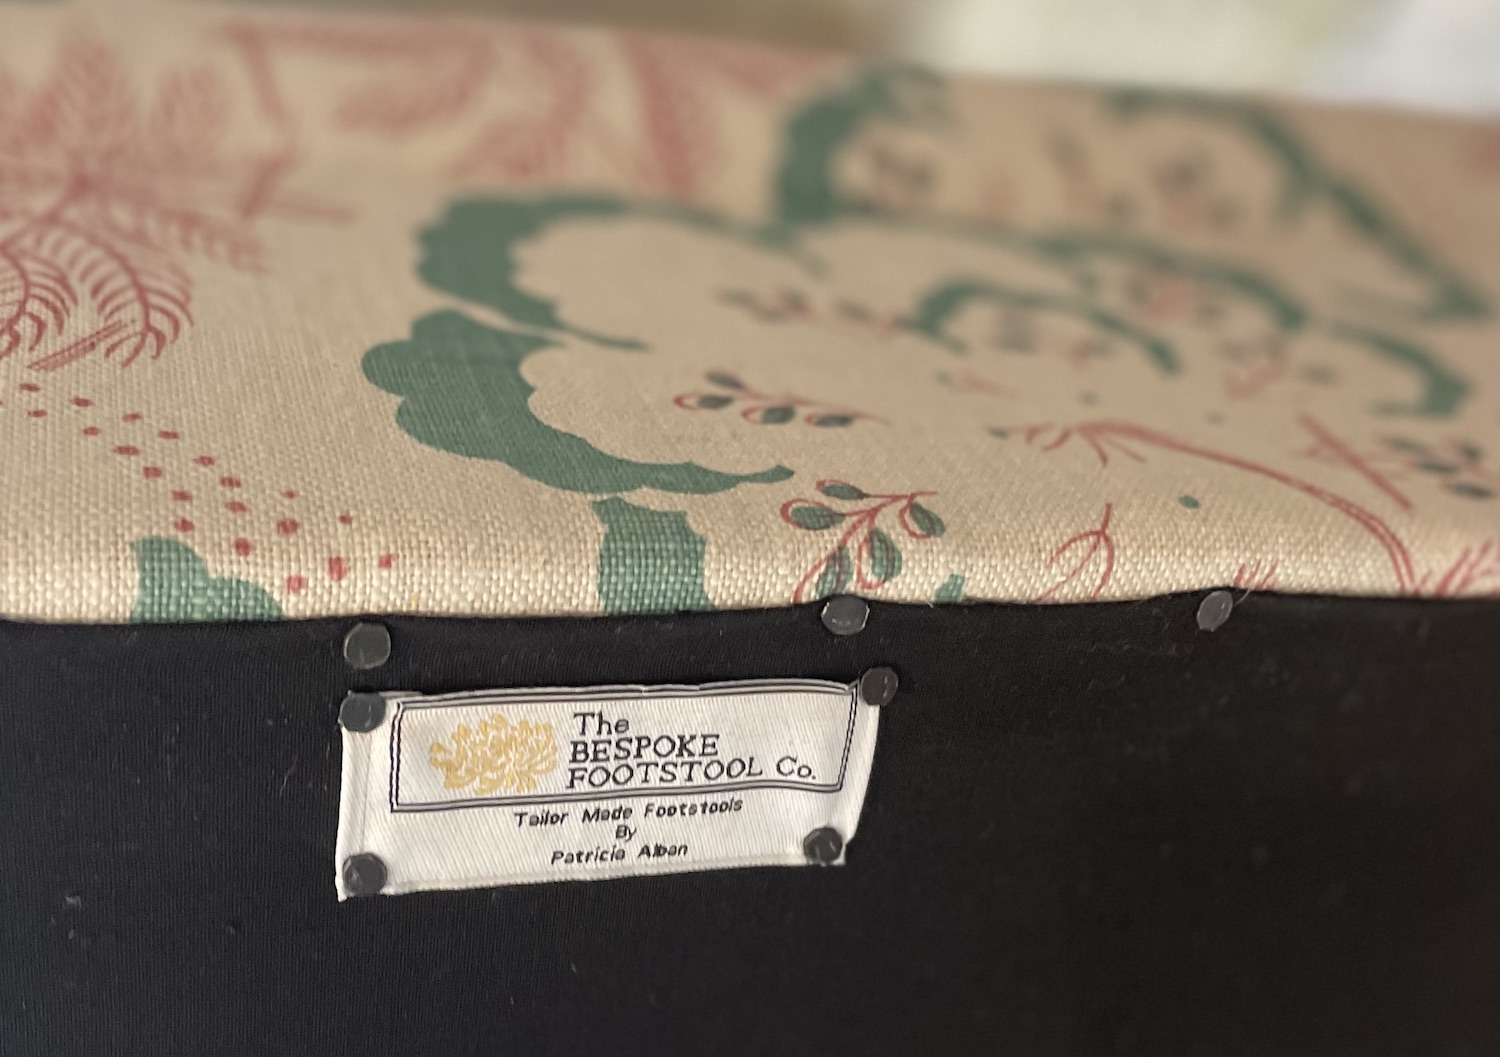 bespoke footstool co signature label